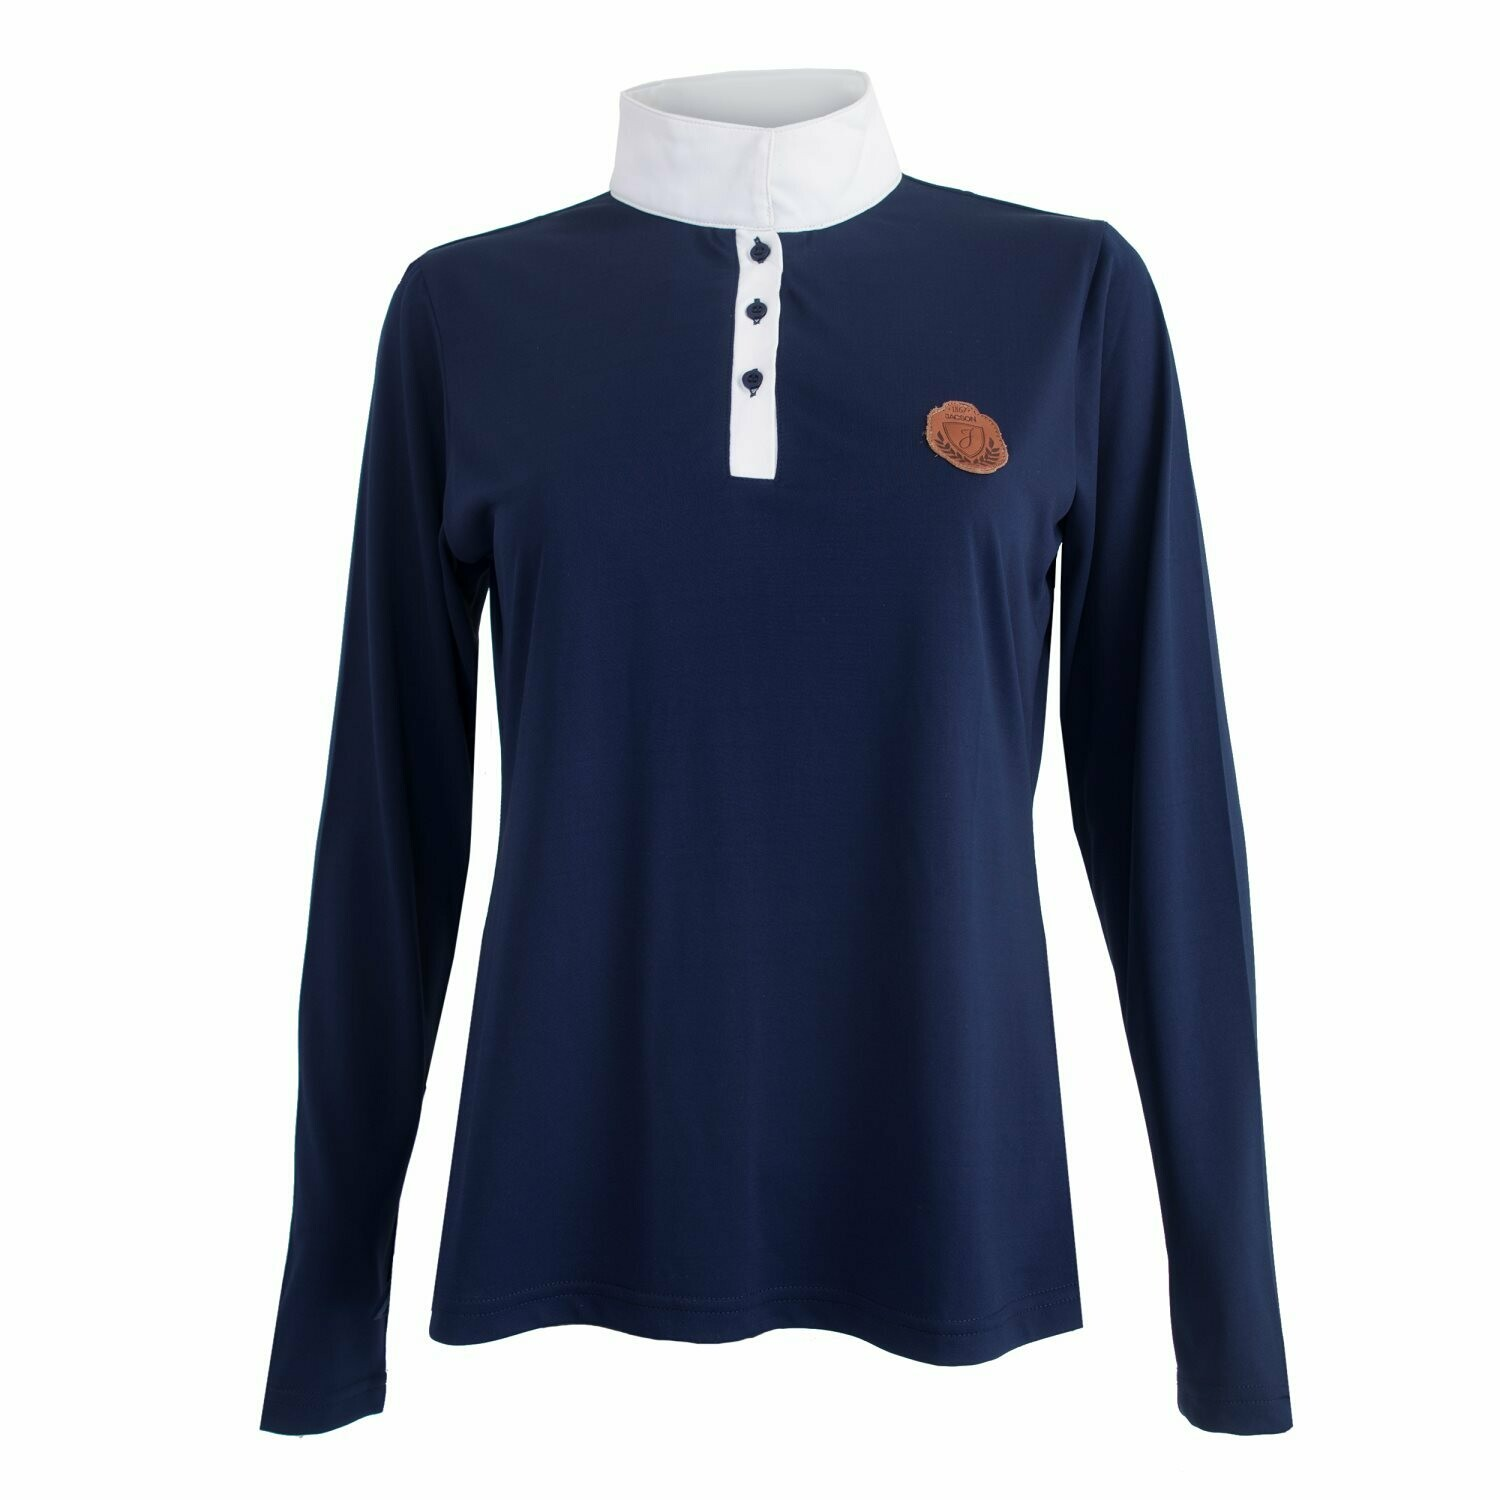 Cathy Long Sleeve Competition Top